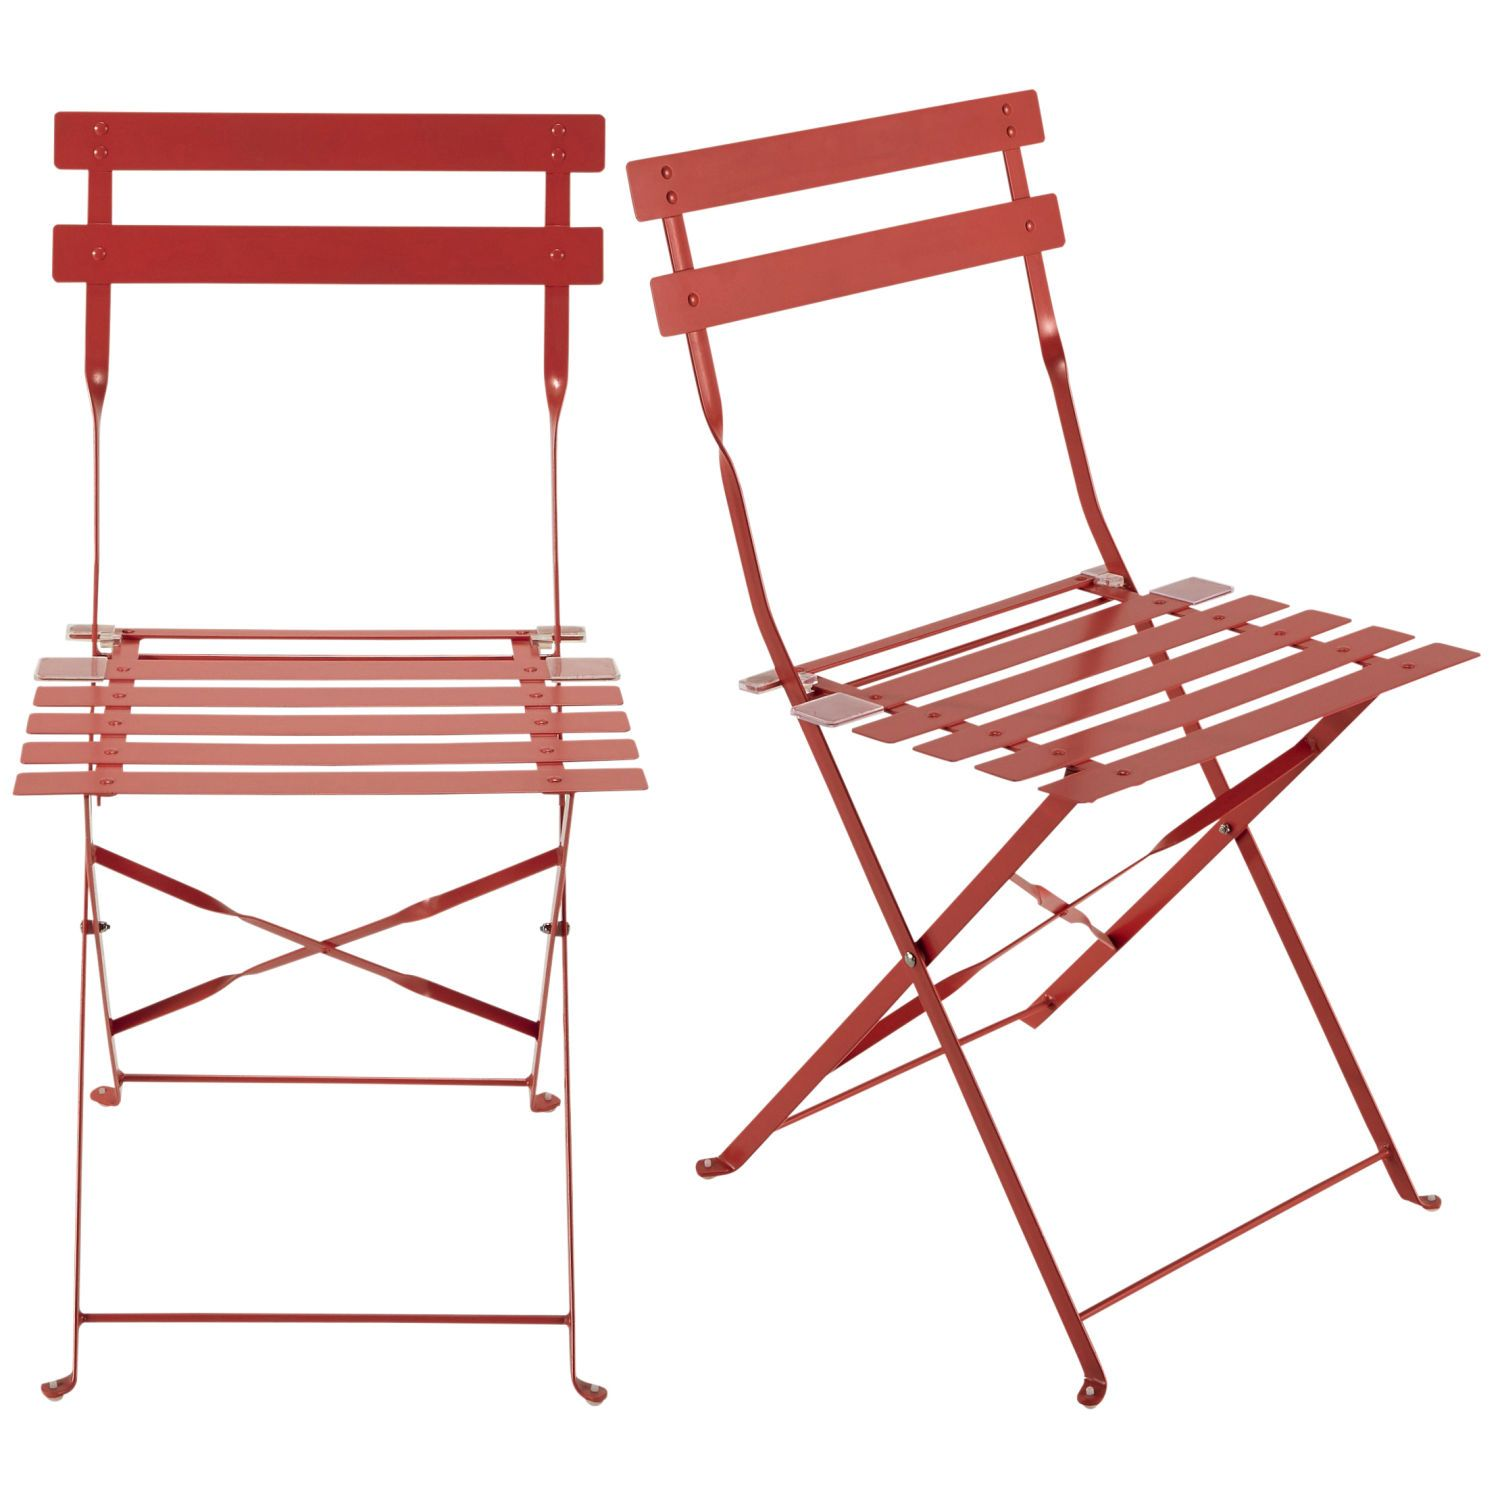 2 Red Metal Folding Outdoor Chairs Folding Garden Chairs Garden Chairs Chair